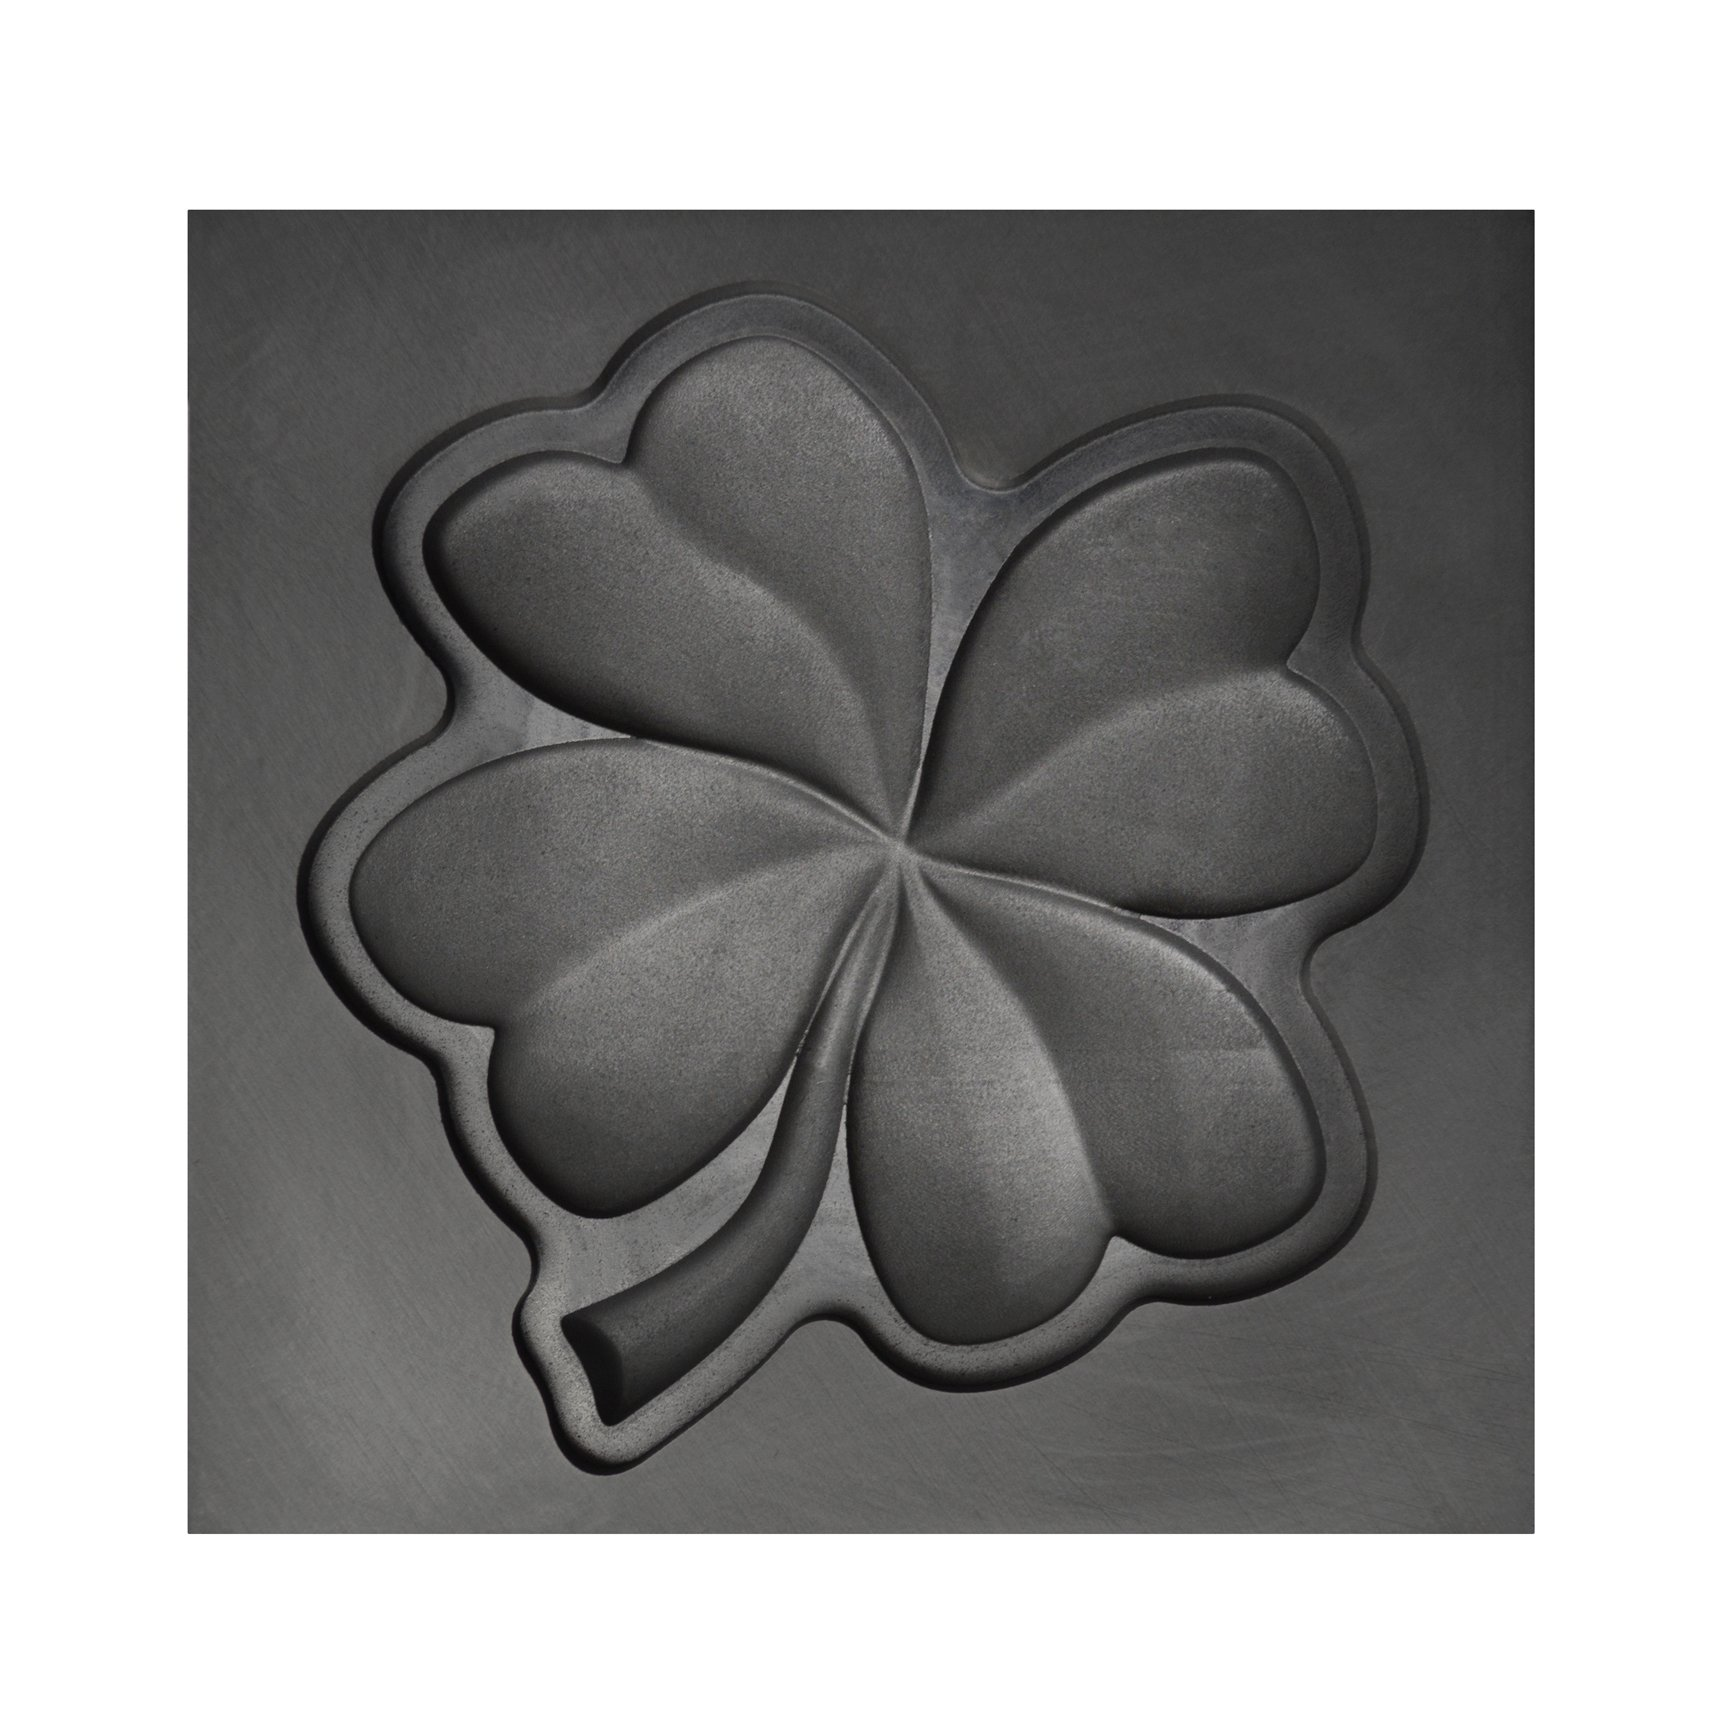 Large - Four Leaf Clover 3D Graphite Ingot Mold for Precious Metal Casting Gold Silver Copper Melting by PMC Supplies LLC